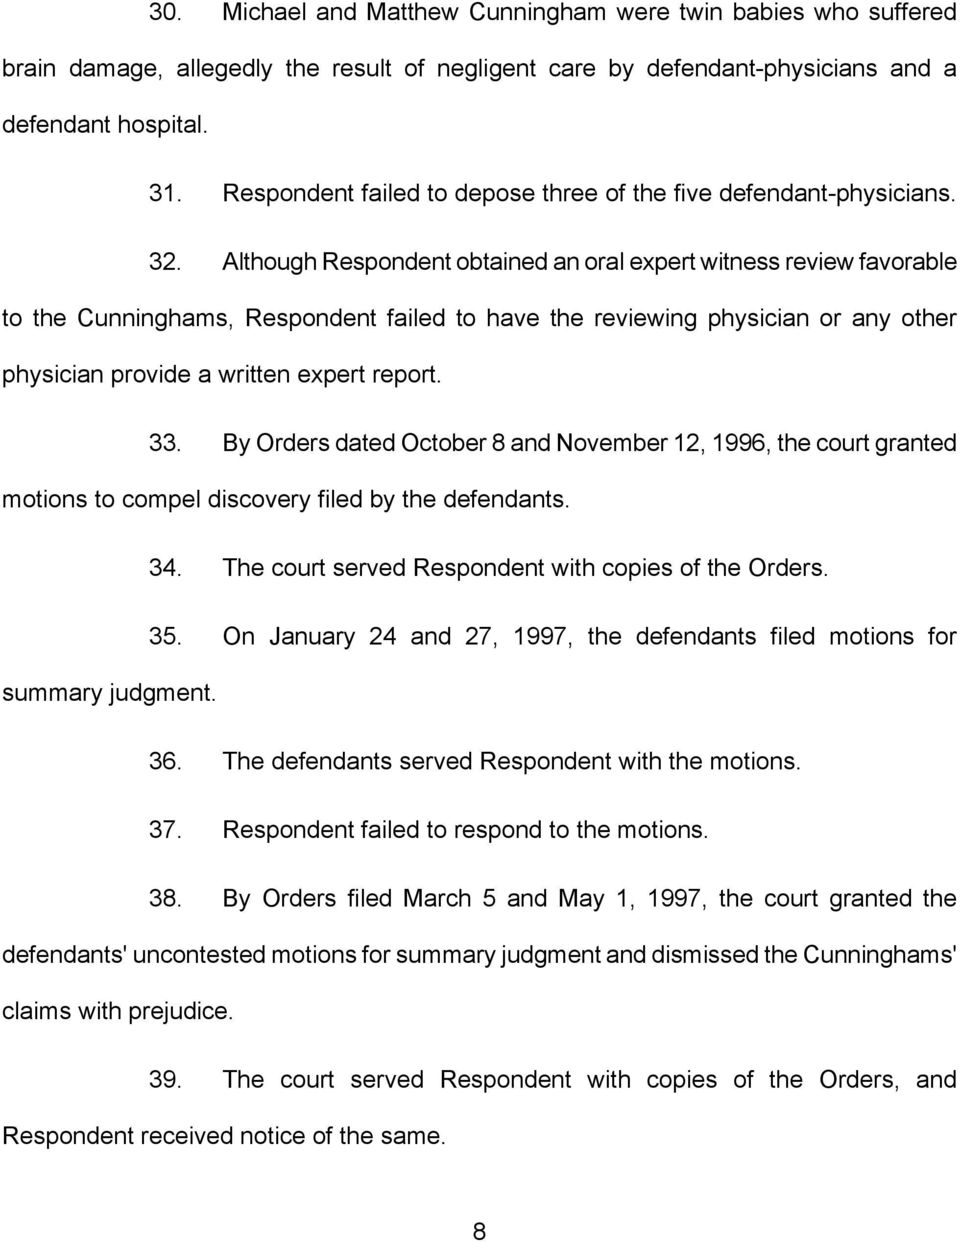 Although Respondent obtained an oral expert witness review favorable to the Cunninghams, Respondent failed to have the reviewing physician or any other physician provide a written expert report. 33.